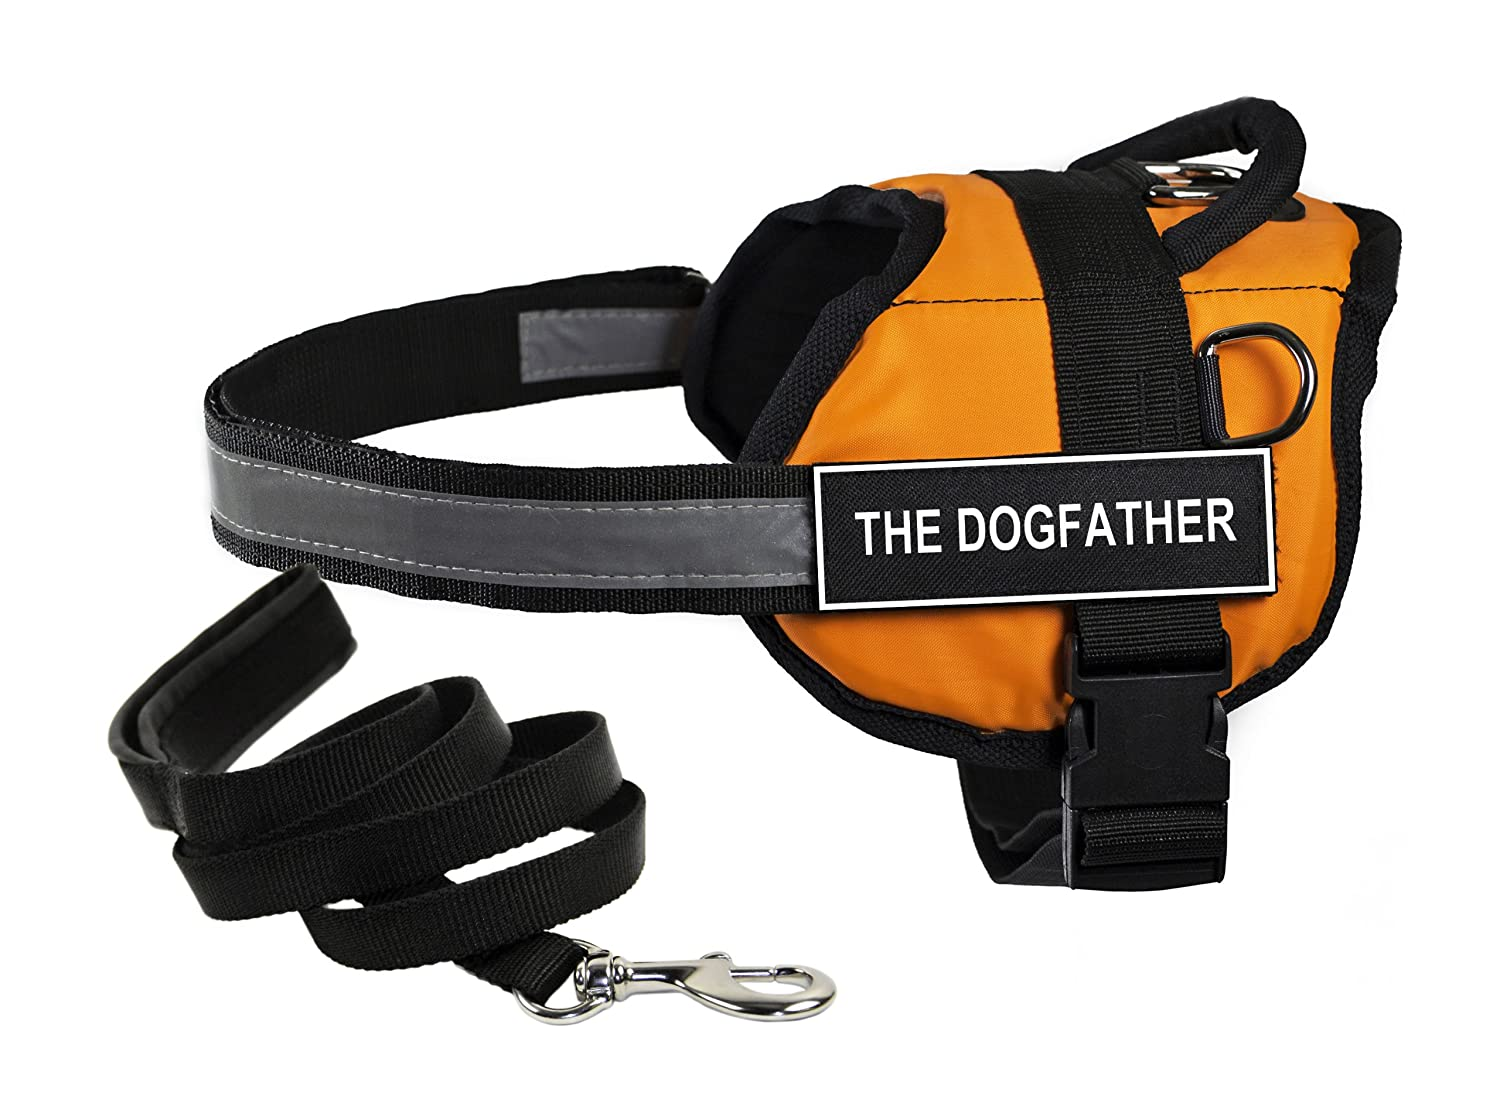 Dean & Tyler's DT Works orange THE DOGFATHER Harness with Chest Padding, X-Small, and Black 6 ft Padded Puppy Leash.